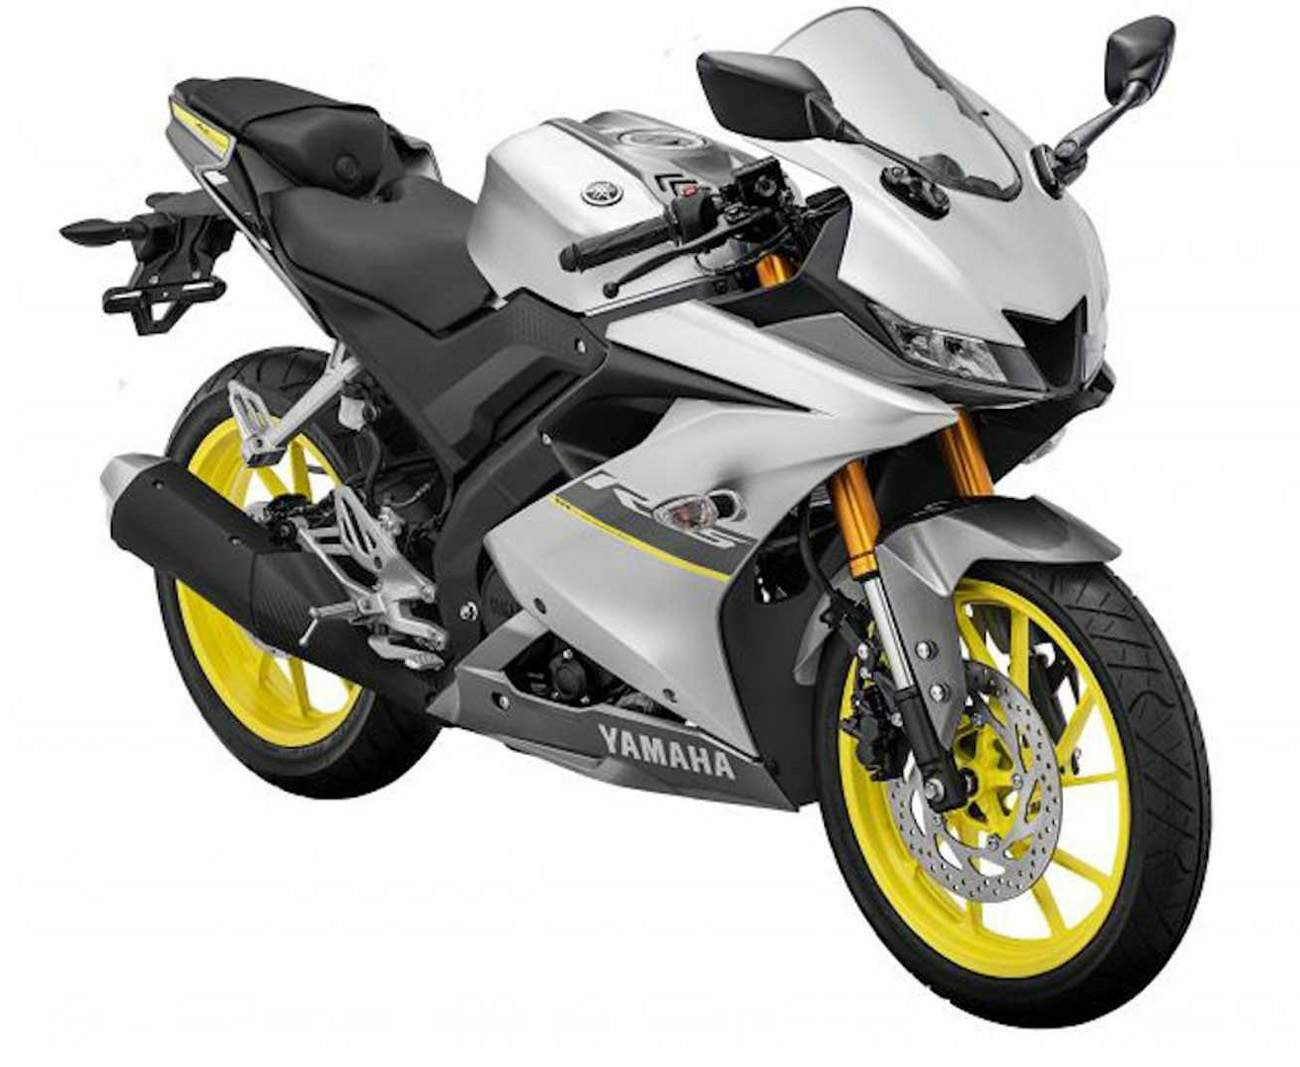 Yamaha YZF-R 15 V3.0 ABS technical specifications